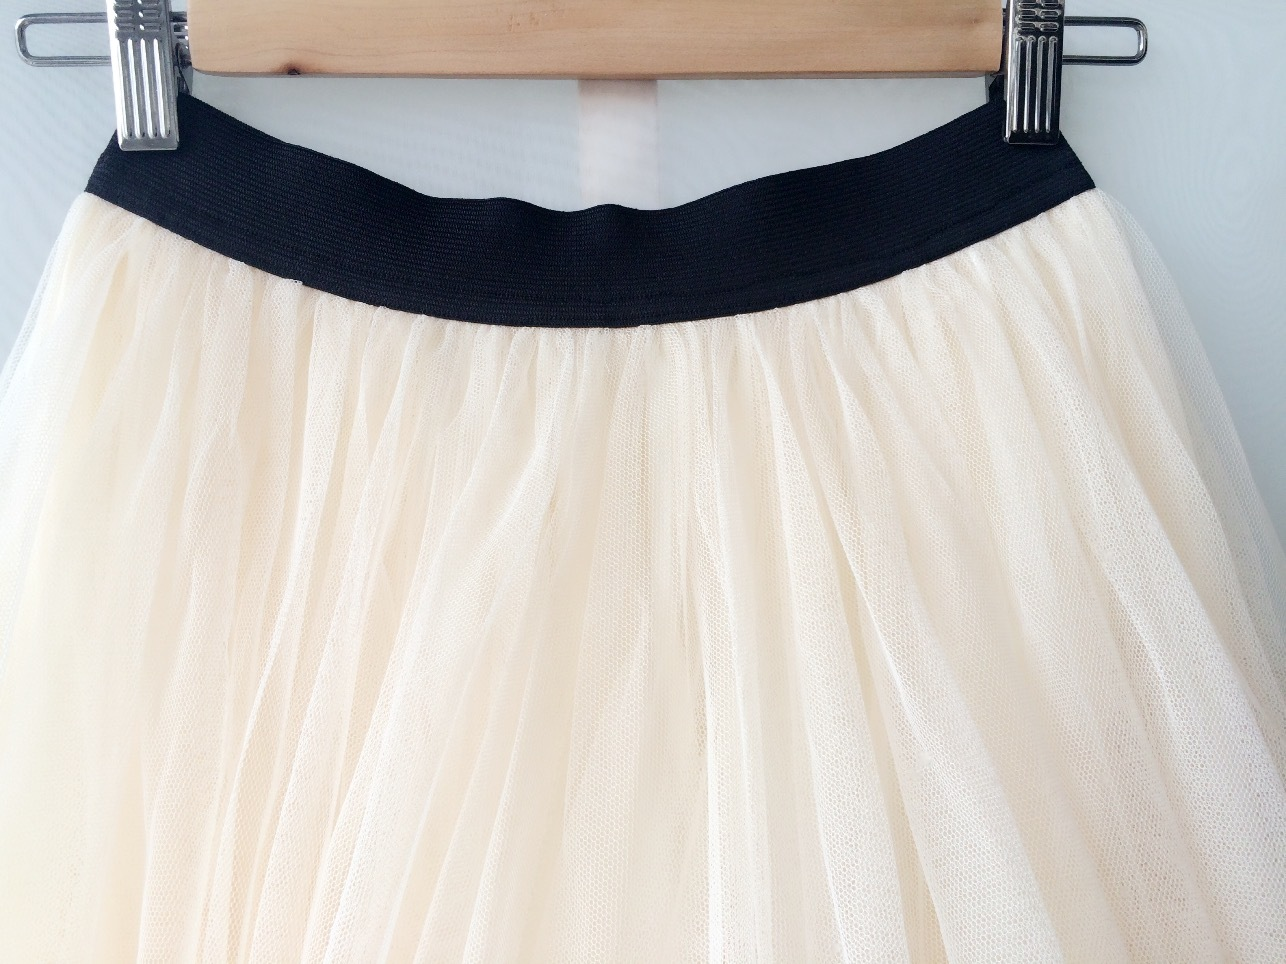 Cream Ivory Long Tulle Skirt High Waisted Ivory Tulle Skirt, Plus Size XXXL NWT